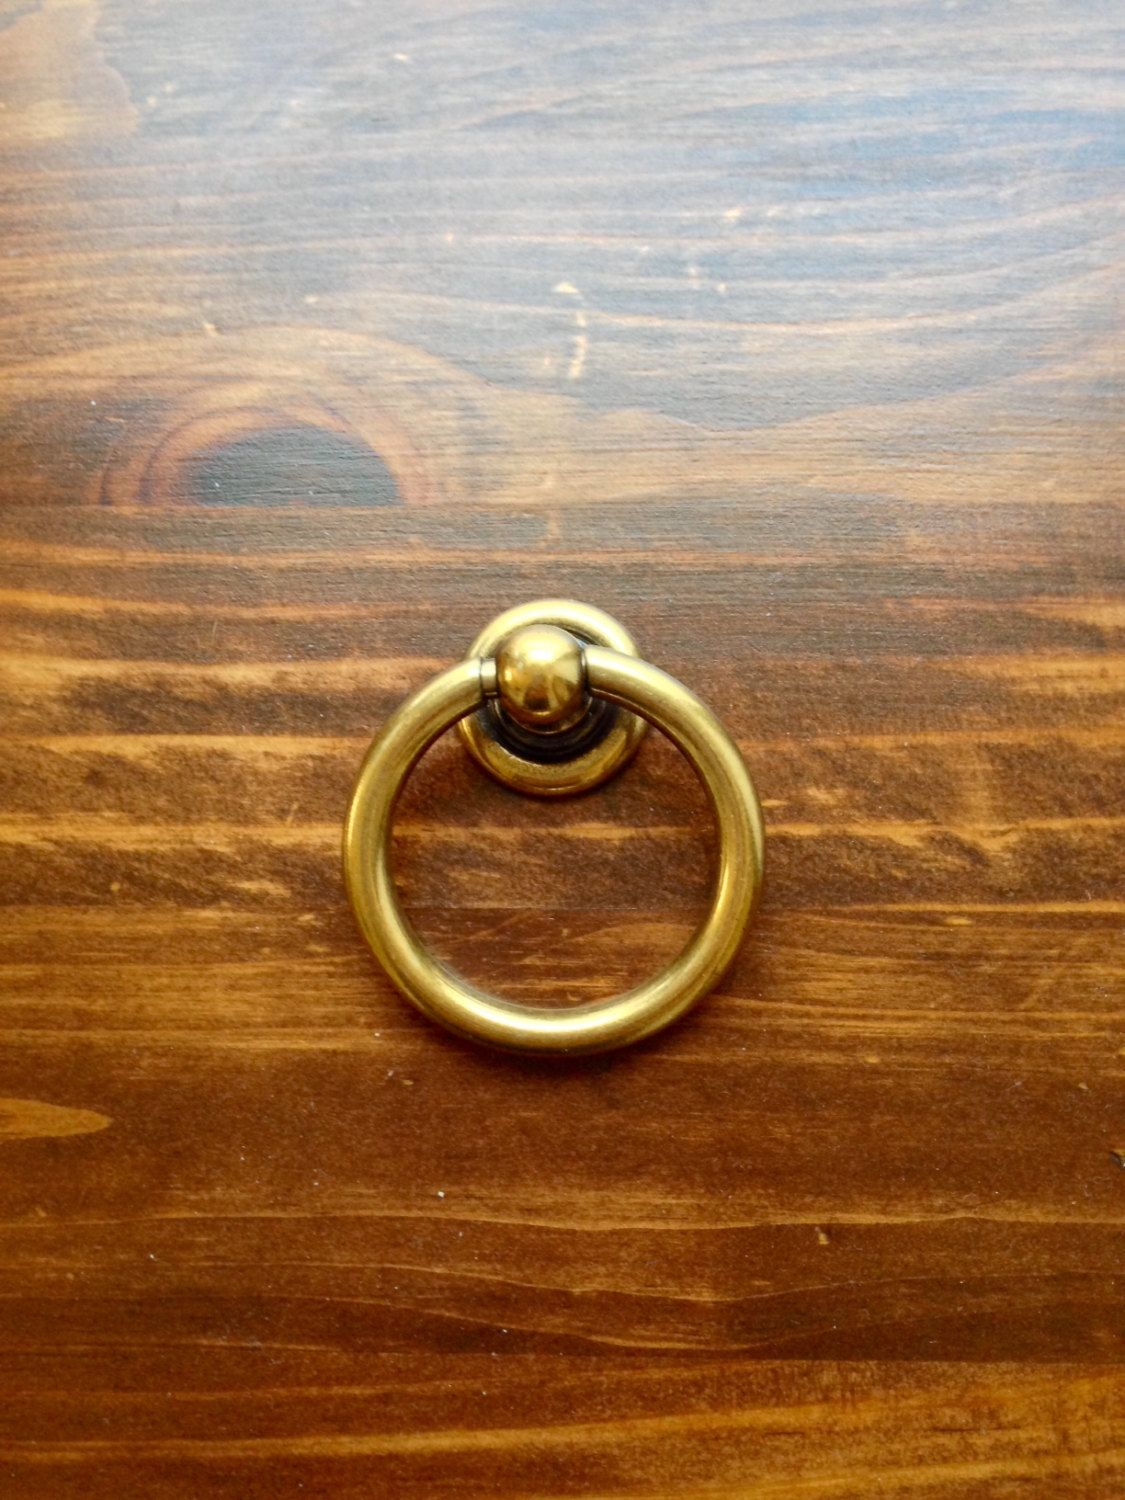 Pin On Office Ring pull cabinet hardware